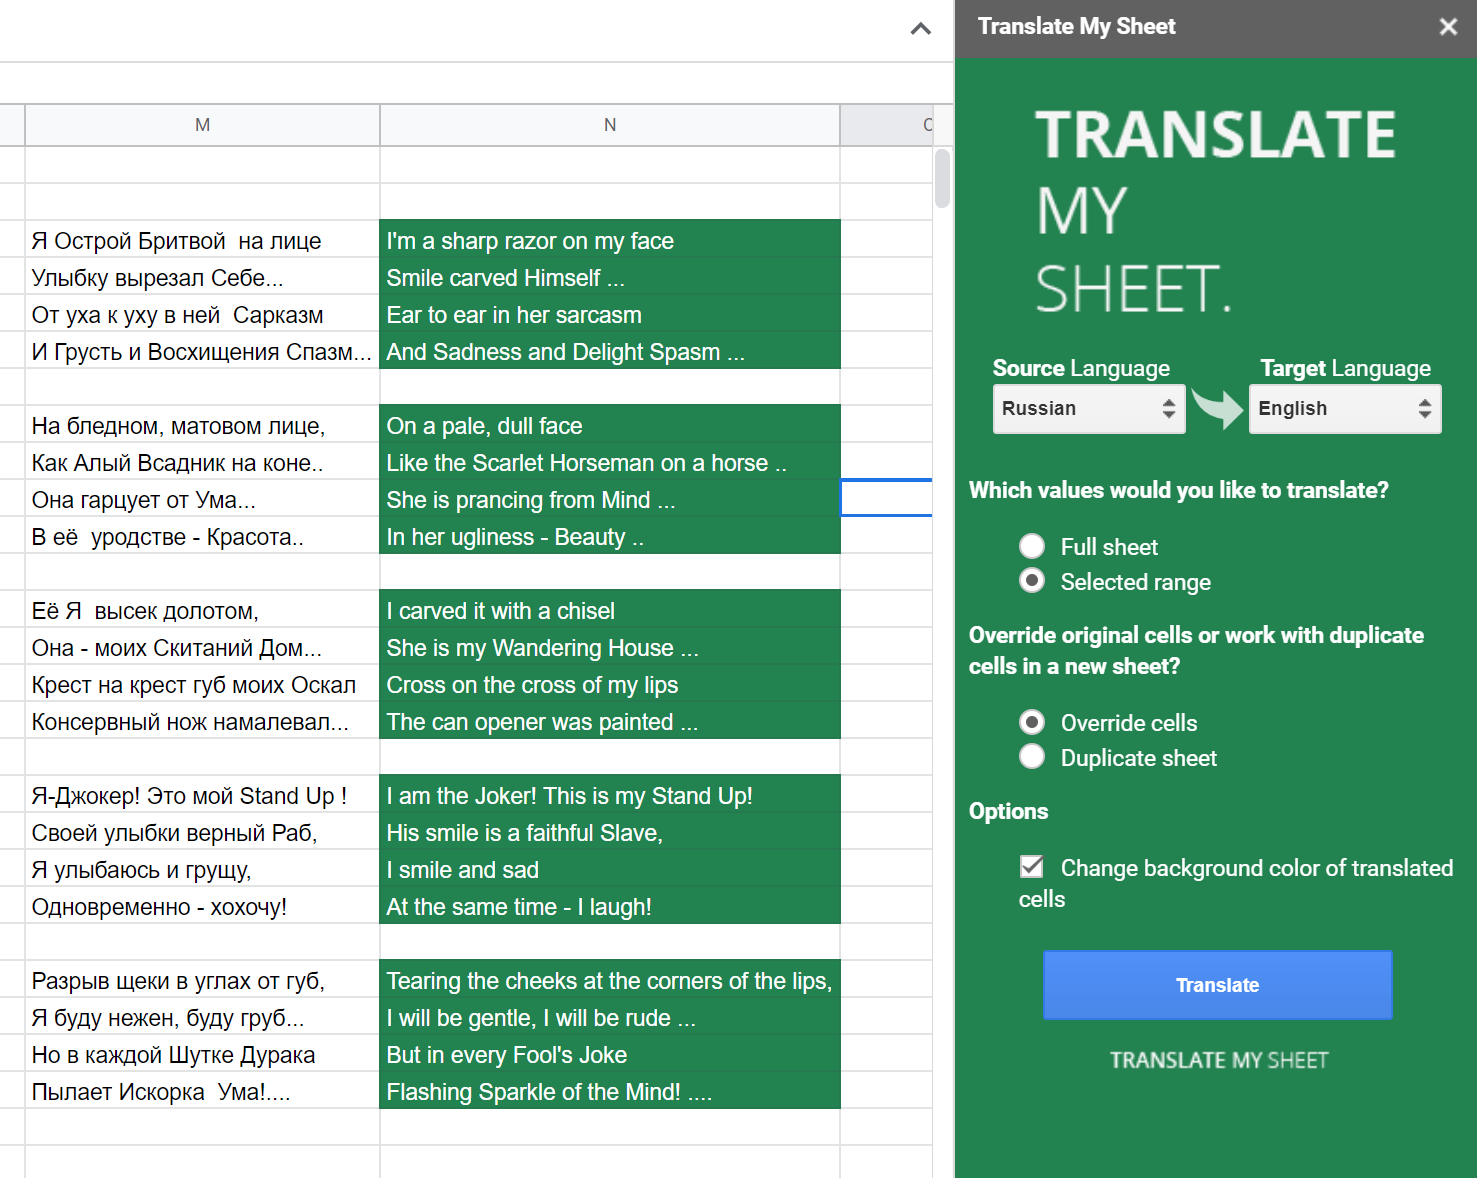 Translate_My Sheet